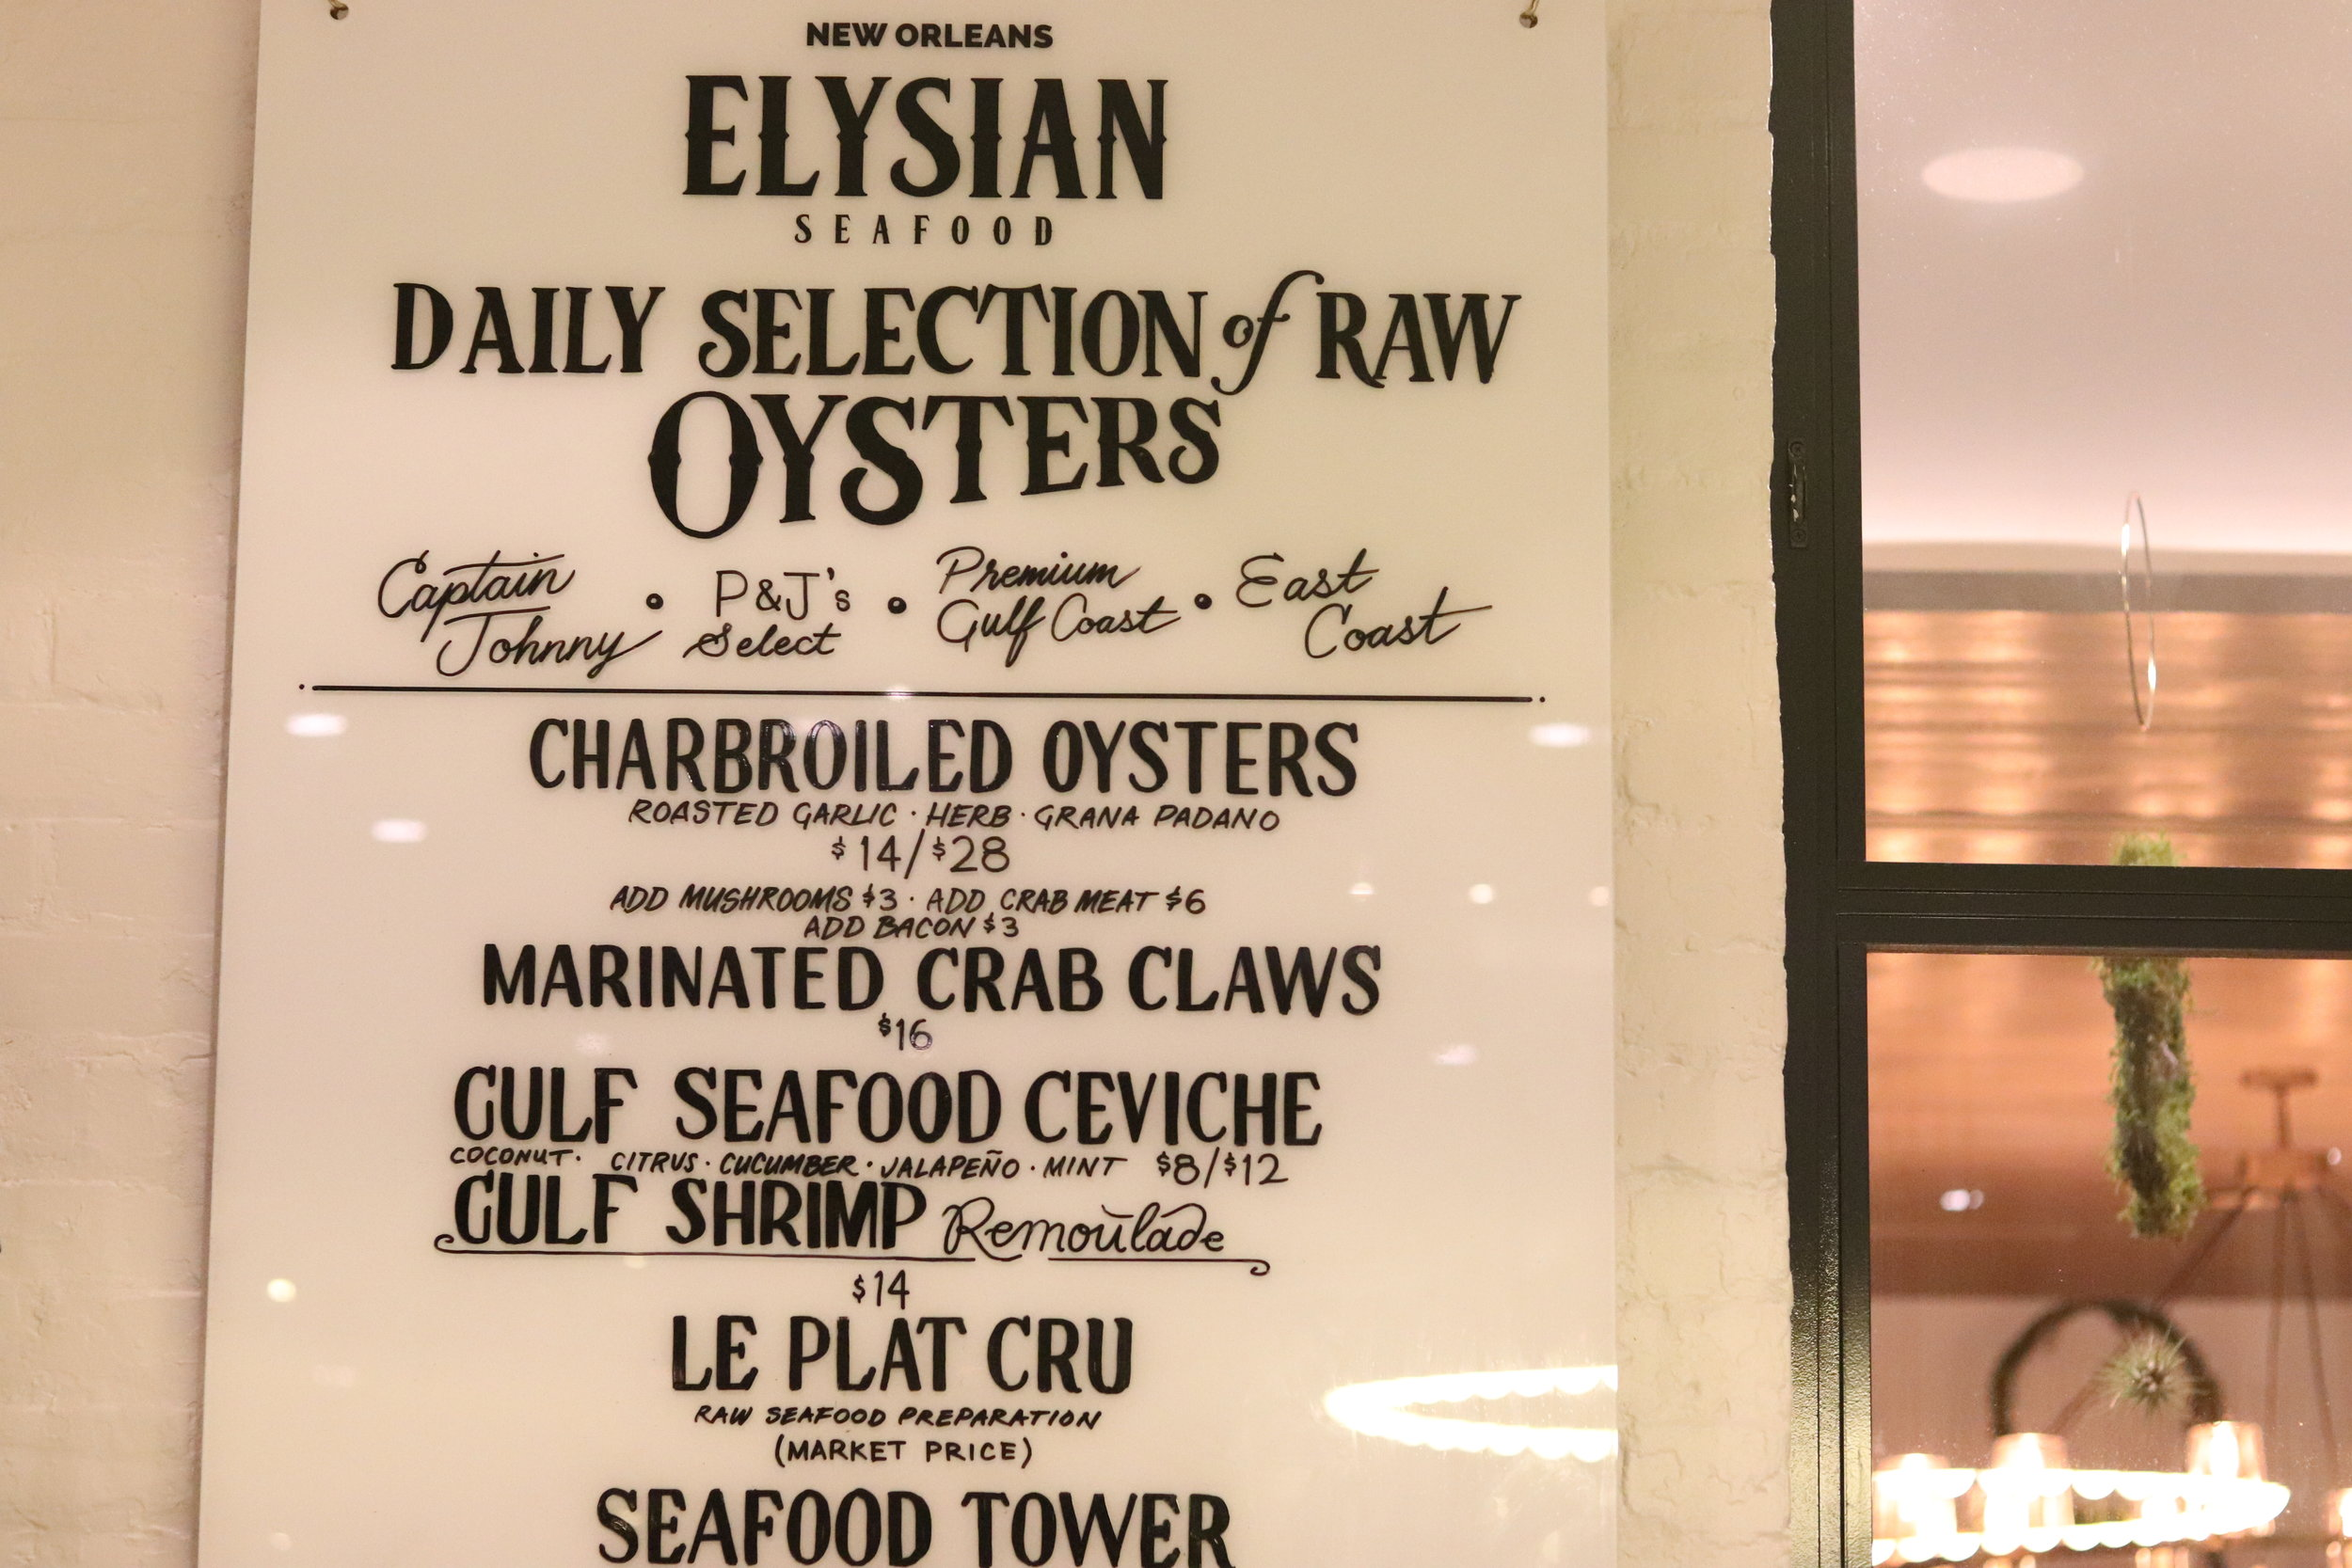 Elysian Seafood - This is the first restaurant we tried,I had the crab claws and Leah had the crab cake, both were amazing; but the crab cake was the winner, the corn cream on top was the perfect combination of sweet and savory goodness.